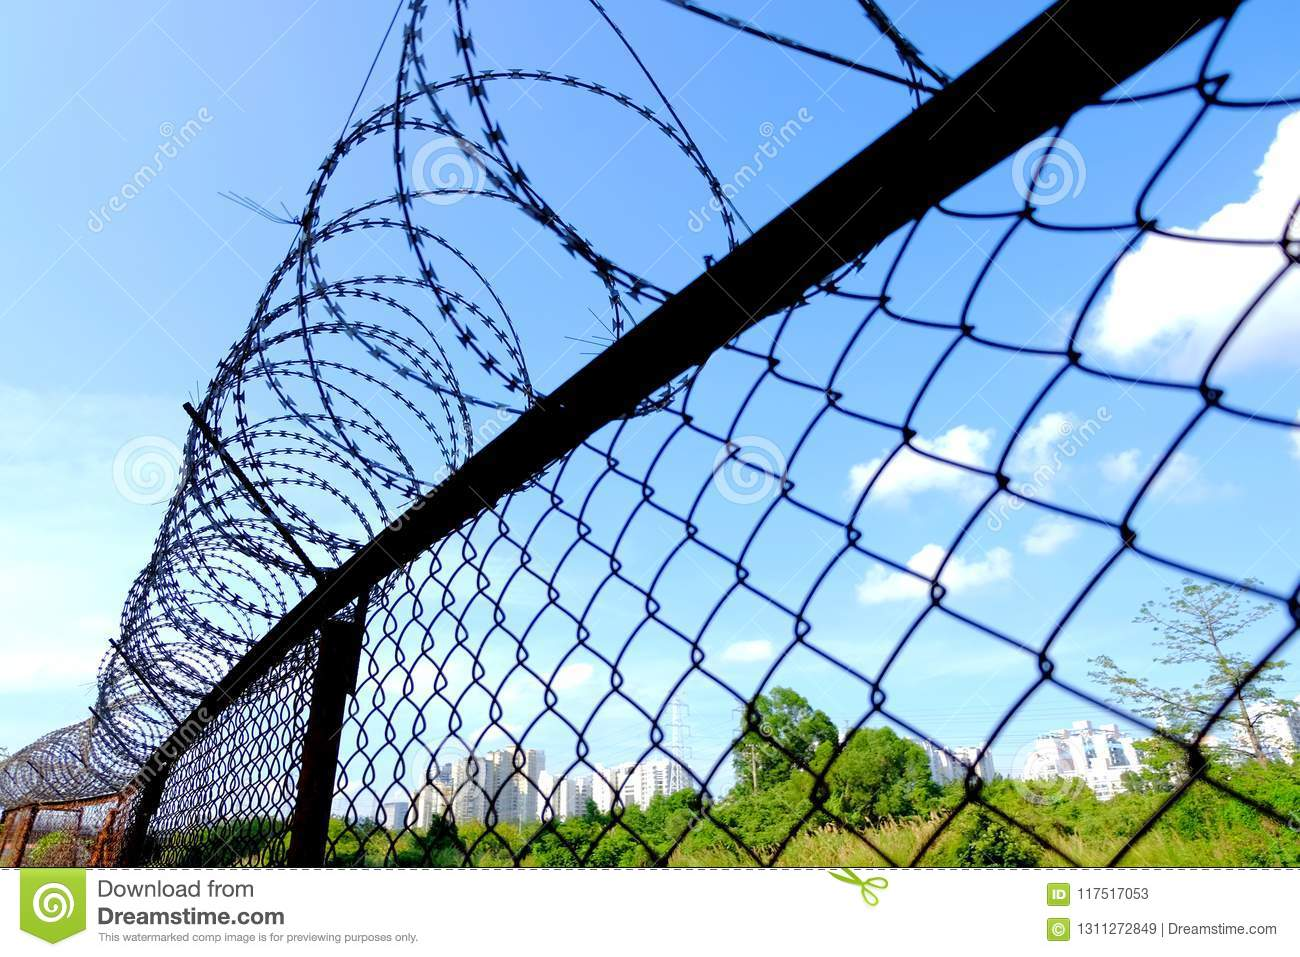 Barbed wire fence stock image. Image of mind, connect - 117517053